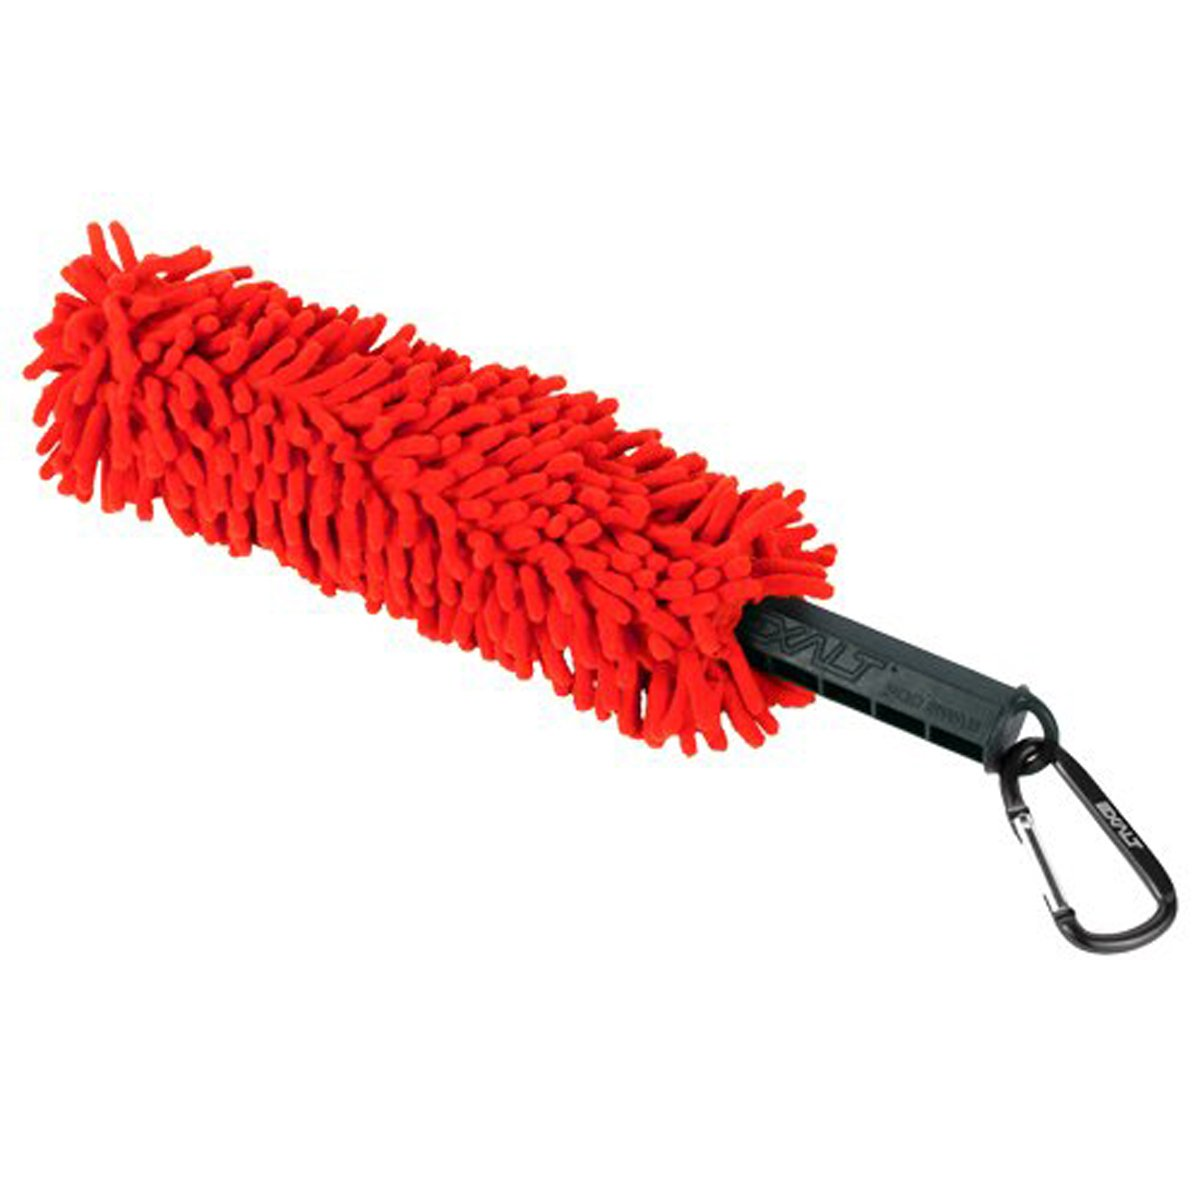 Exalt Paintball Pod Swab/Pod Cleaner Squeegee (Red) by Exalt